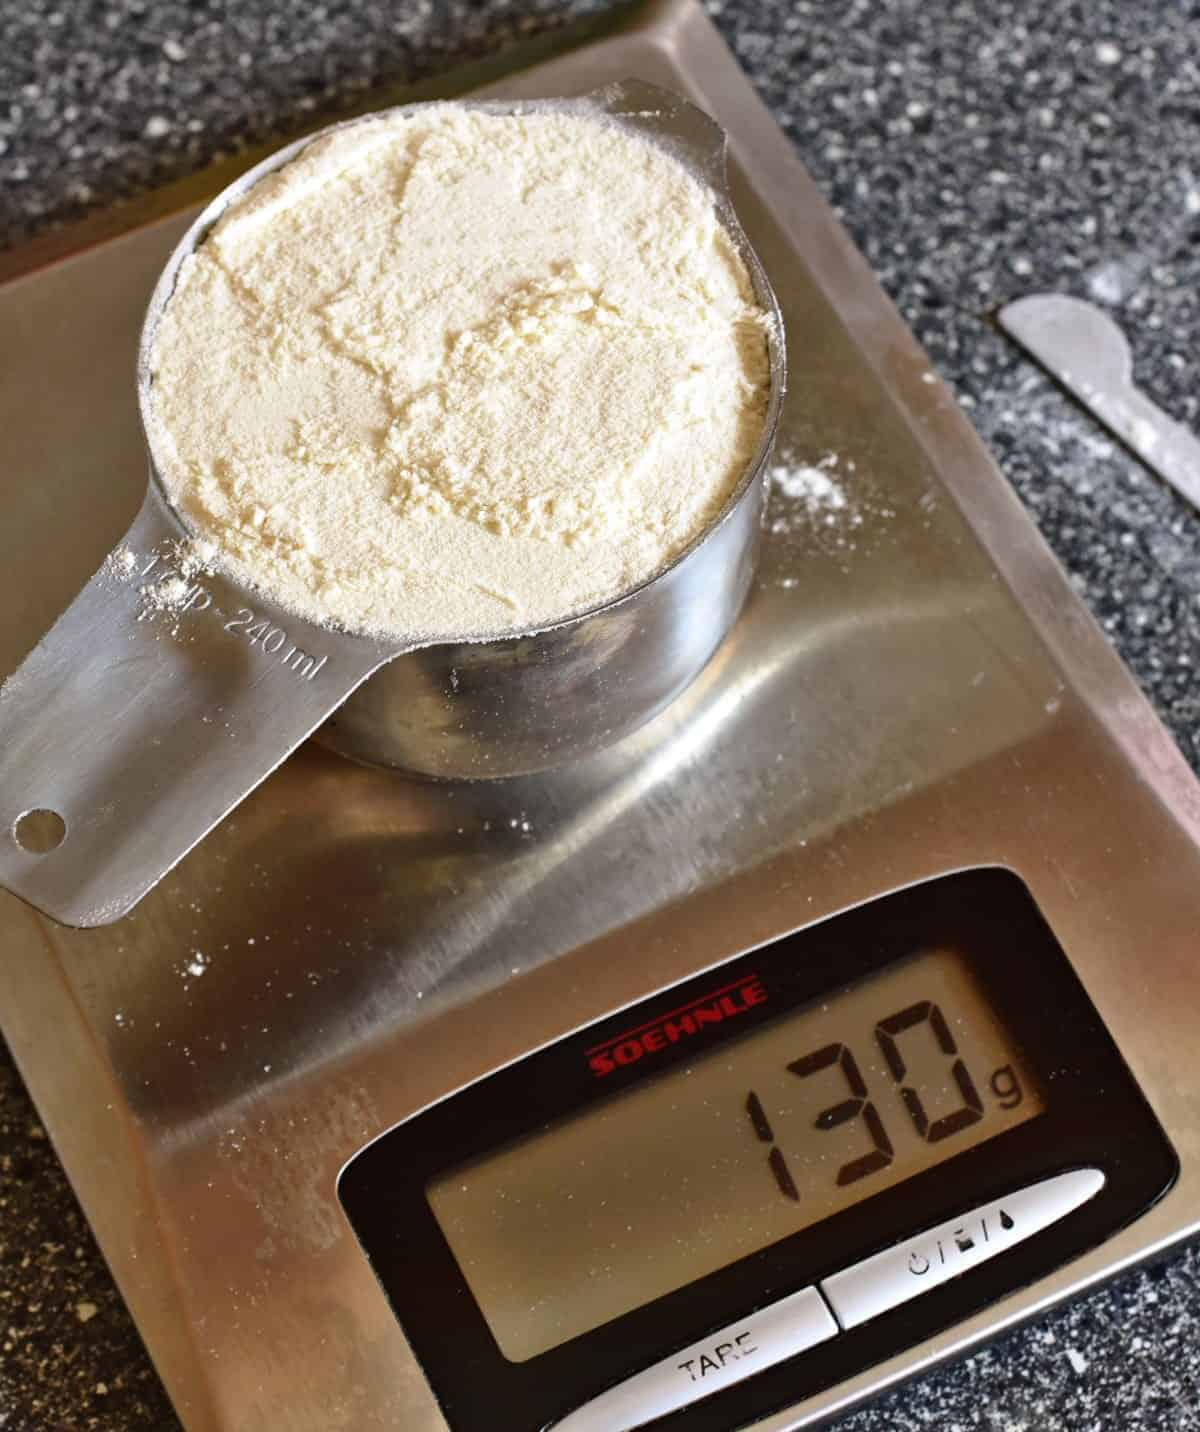 u.s. cup flour to metric scale